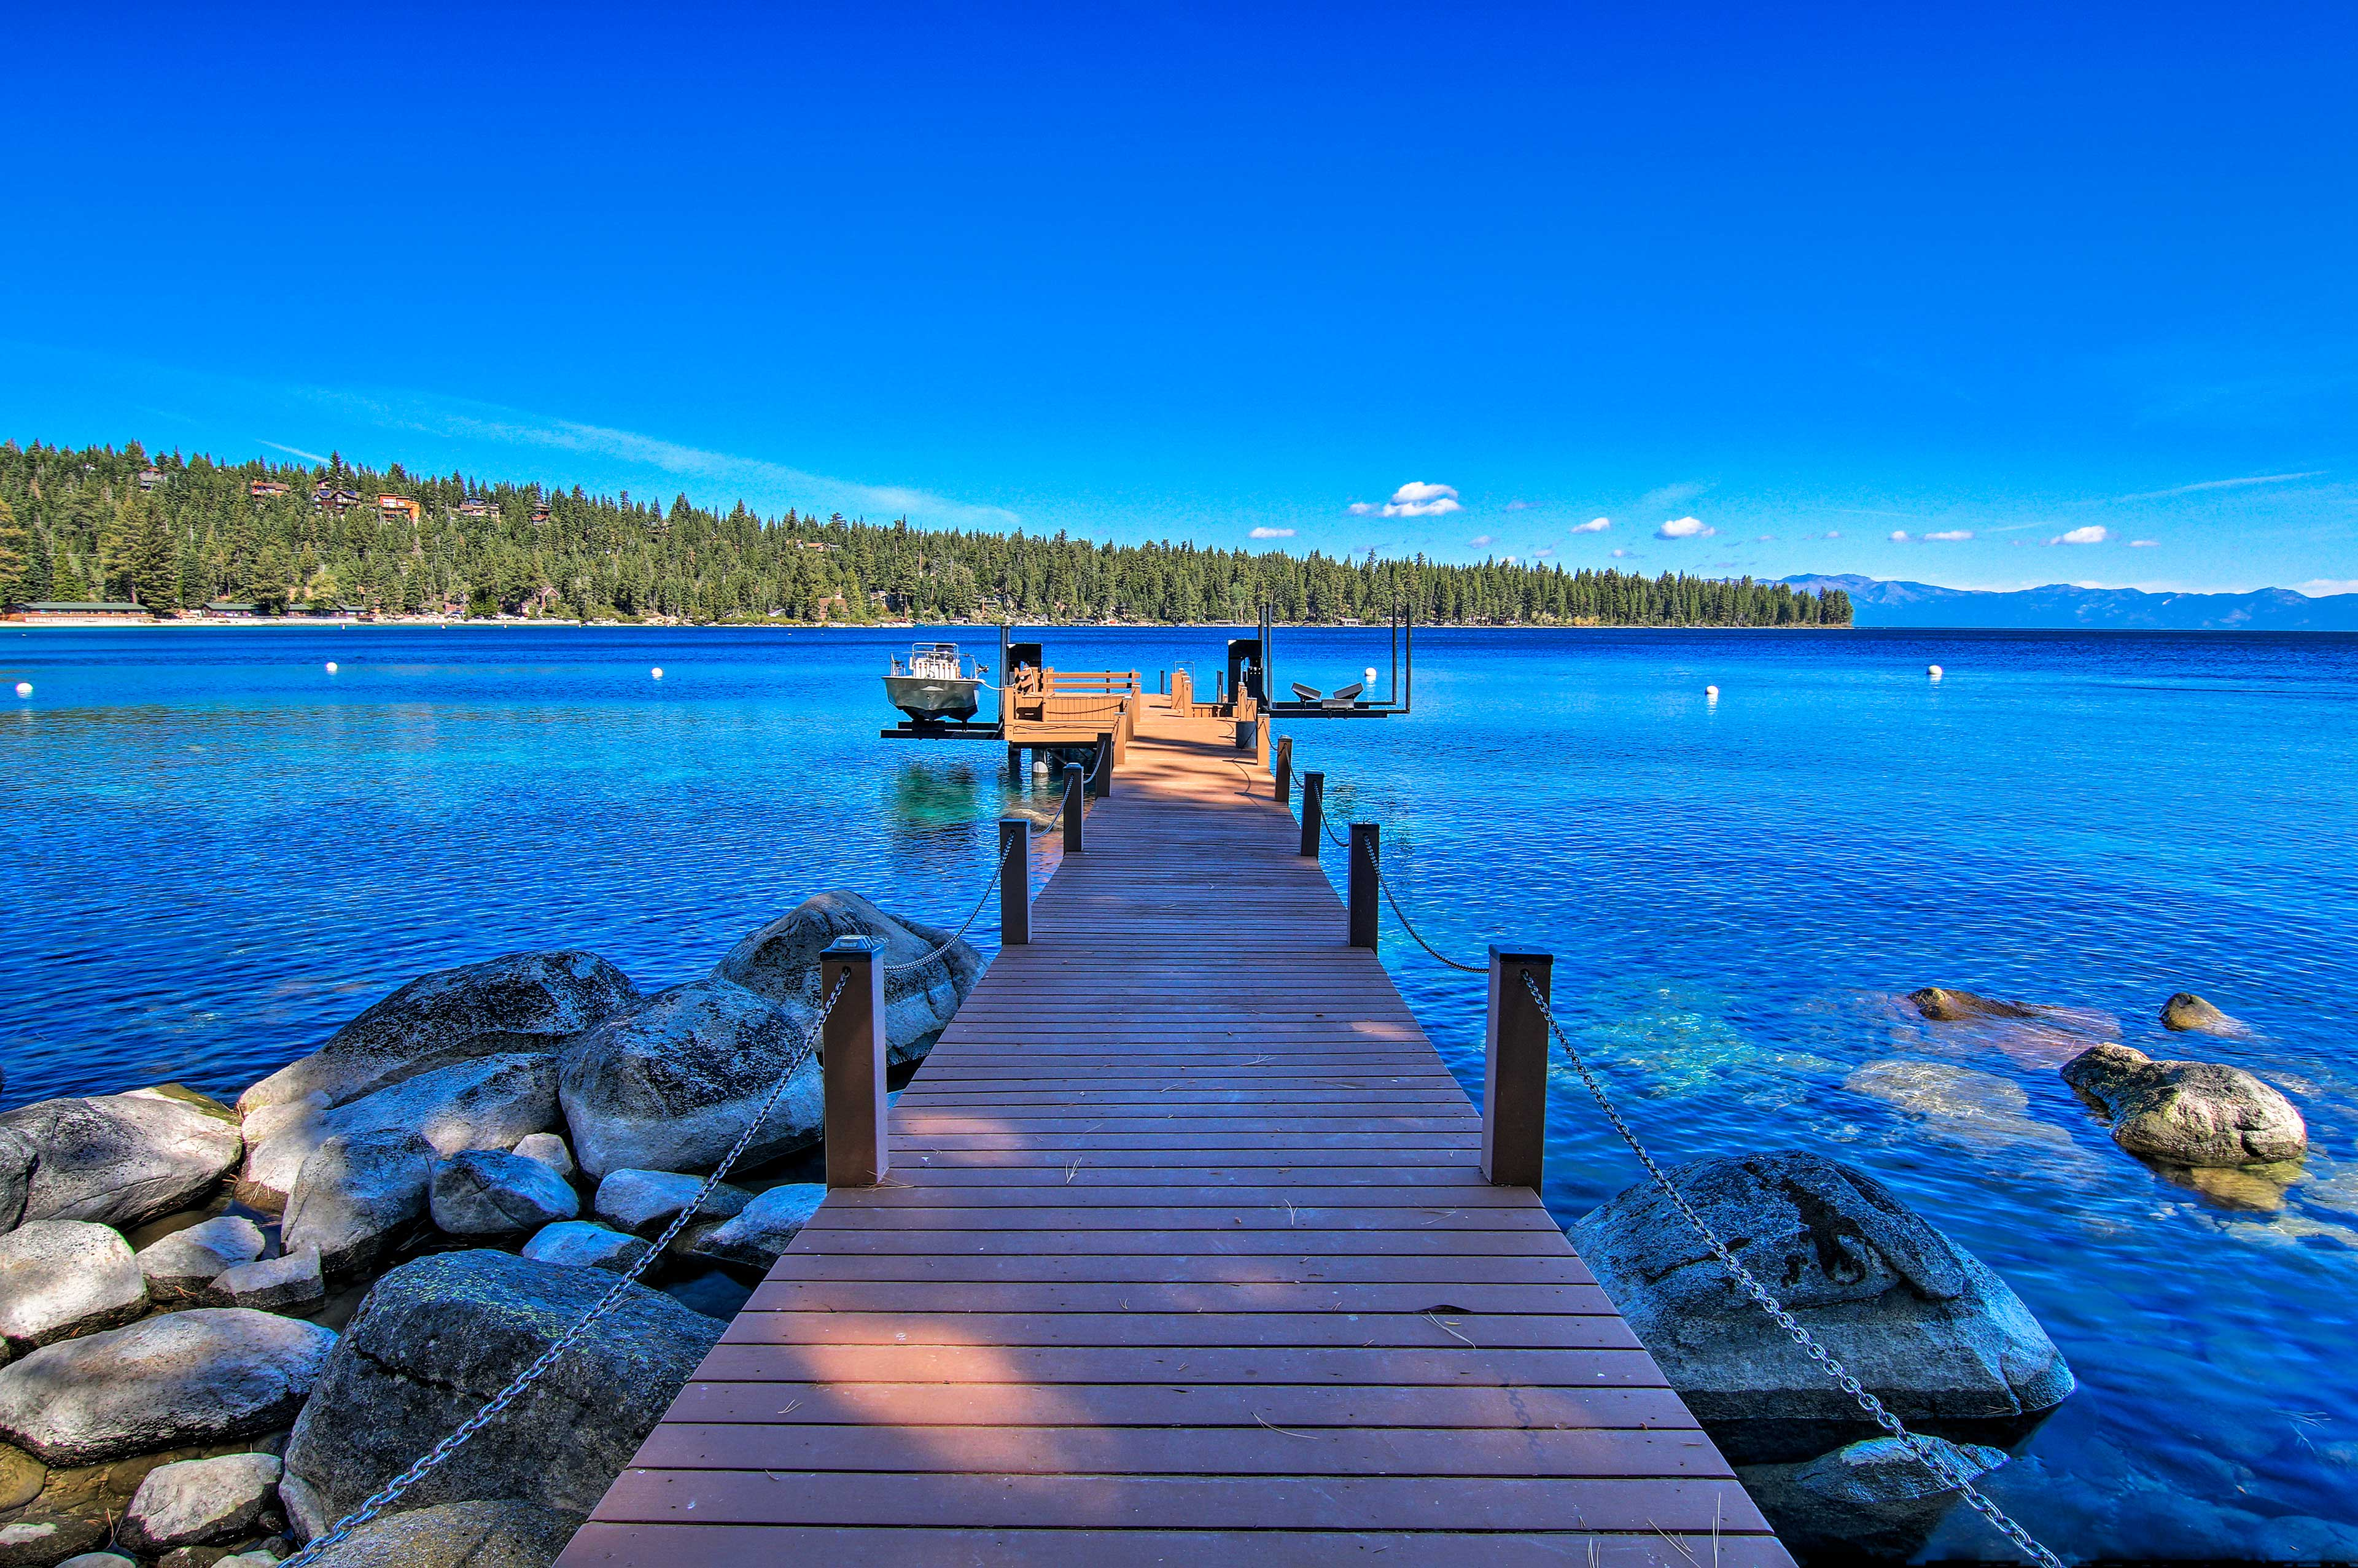 Tie up your boat to the private dock for easy access.